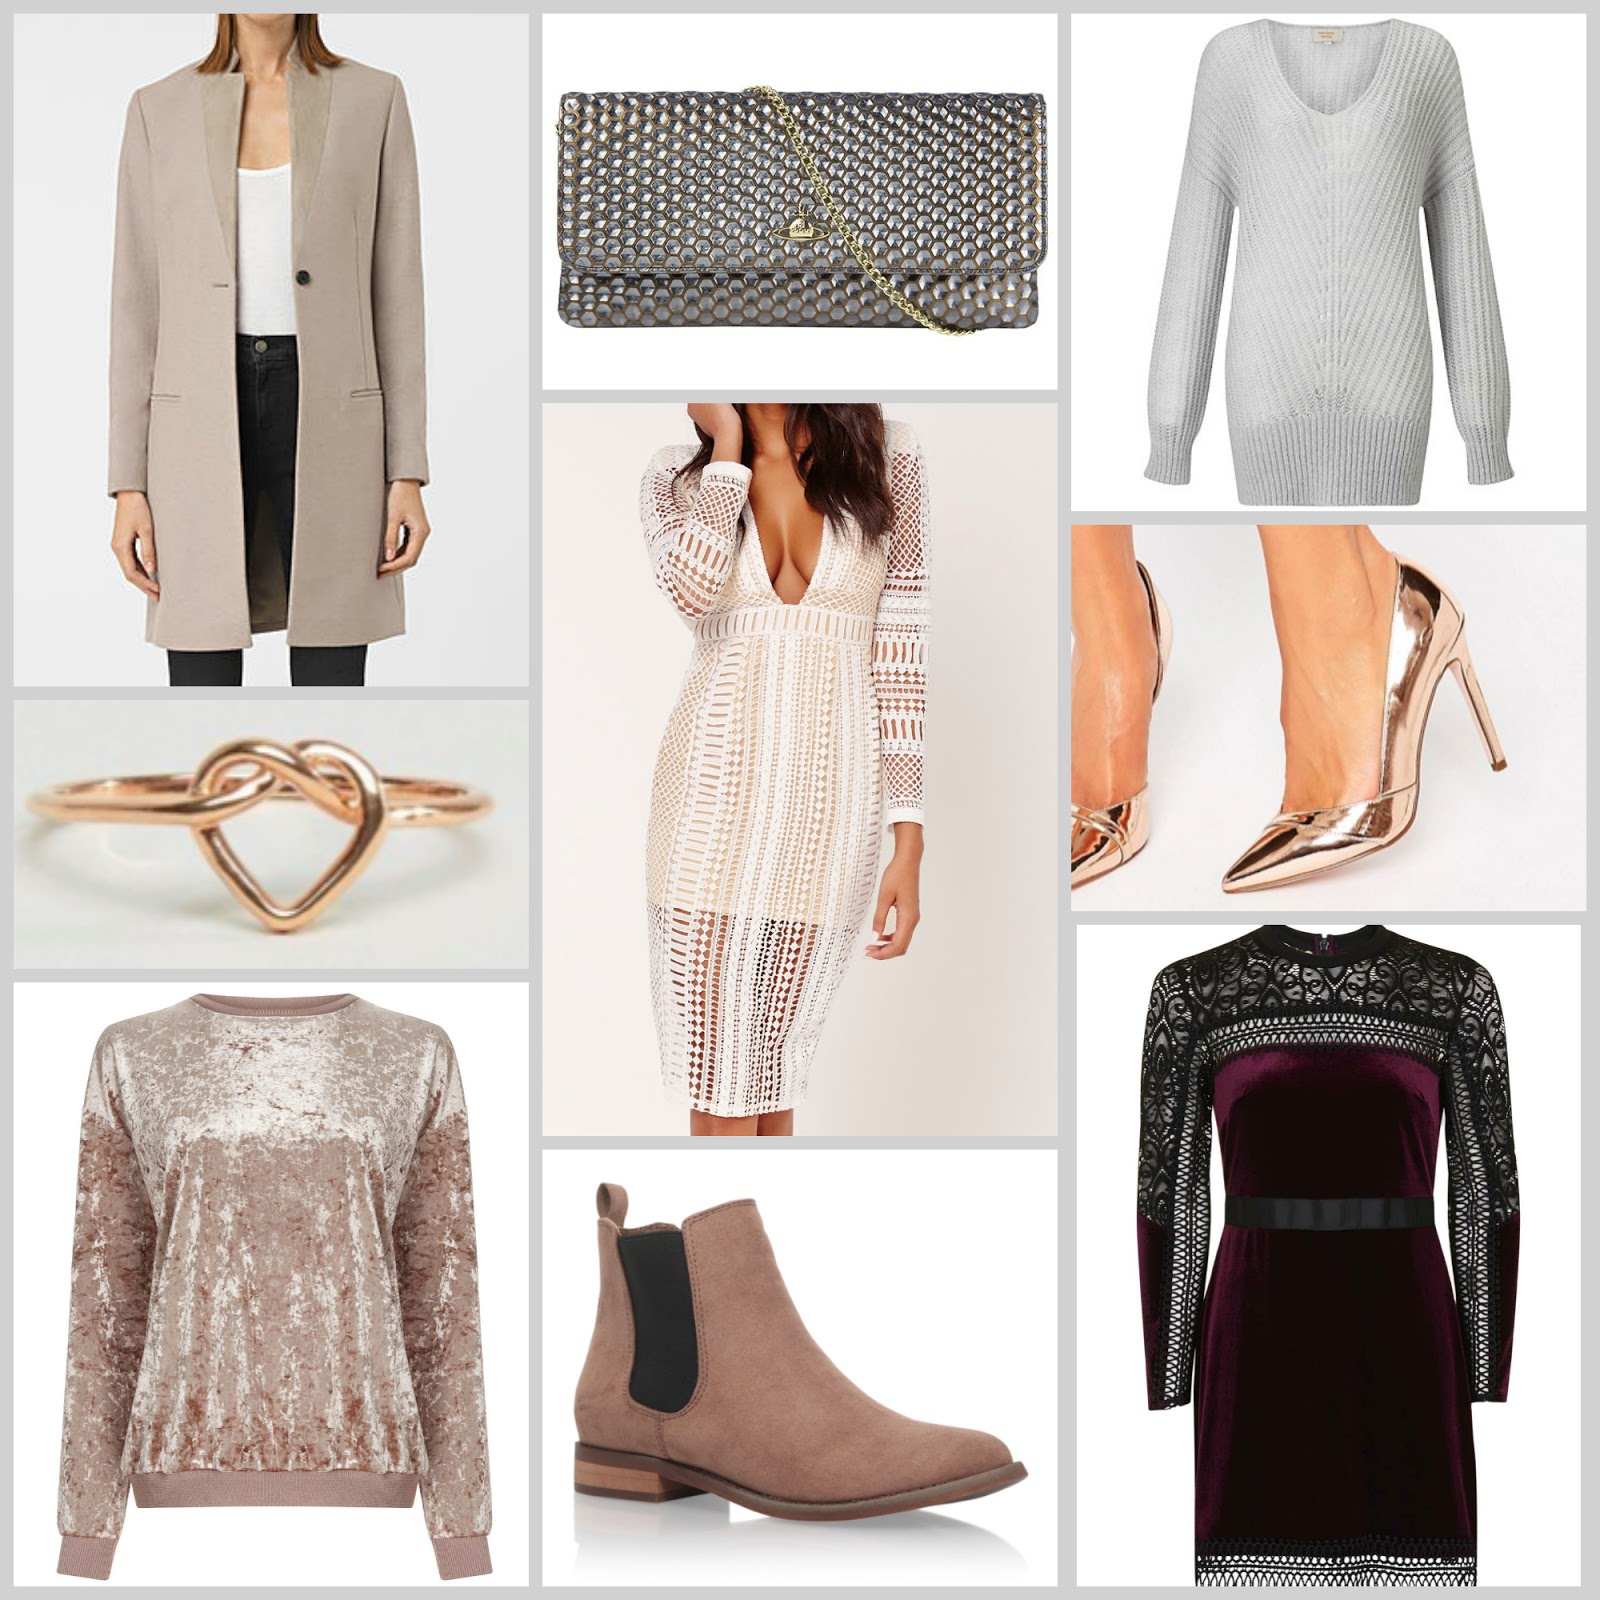 winter style wishlist cosy jumpers chic coats vivienne westwood clutch bag party dresses velvet pieces rose gold jewellery metallic statement heels shoes